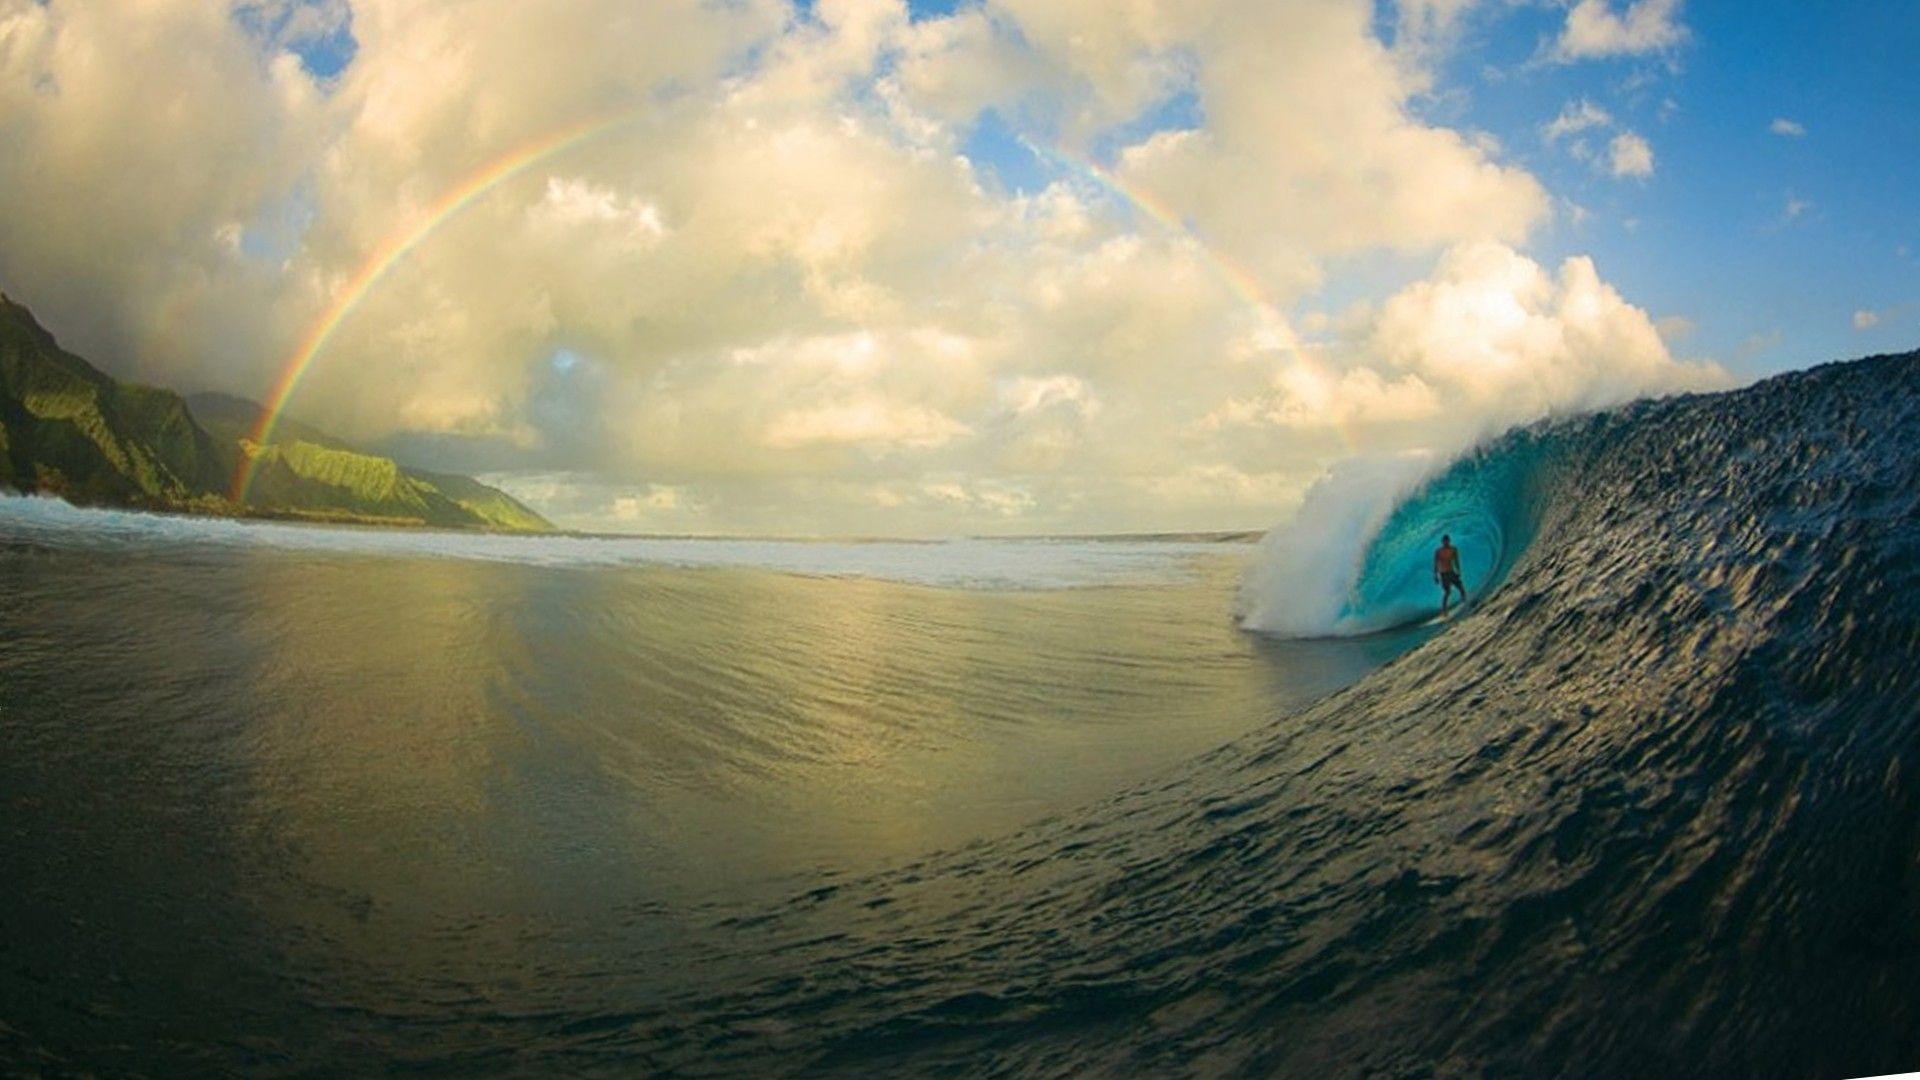 HD Surfing Wallpapers 1920x1080